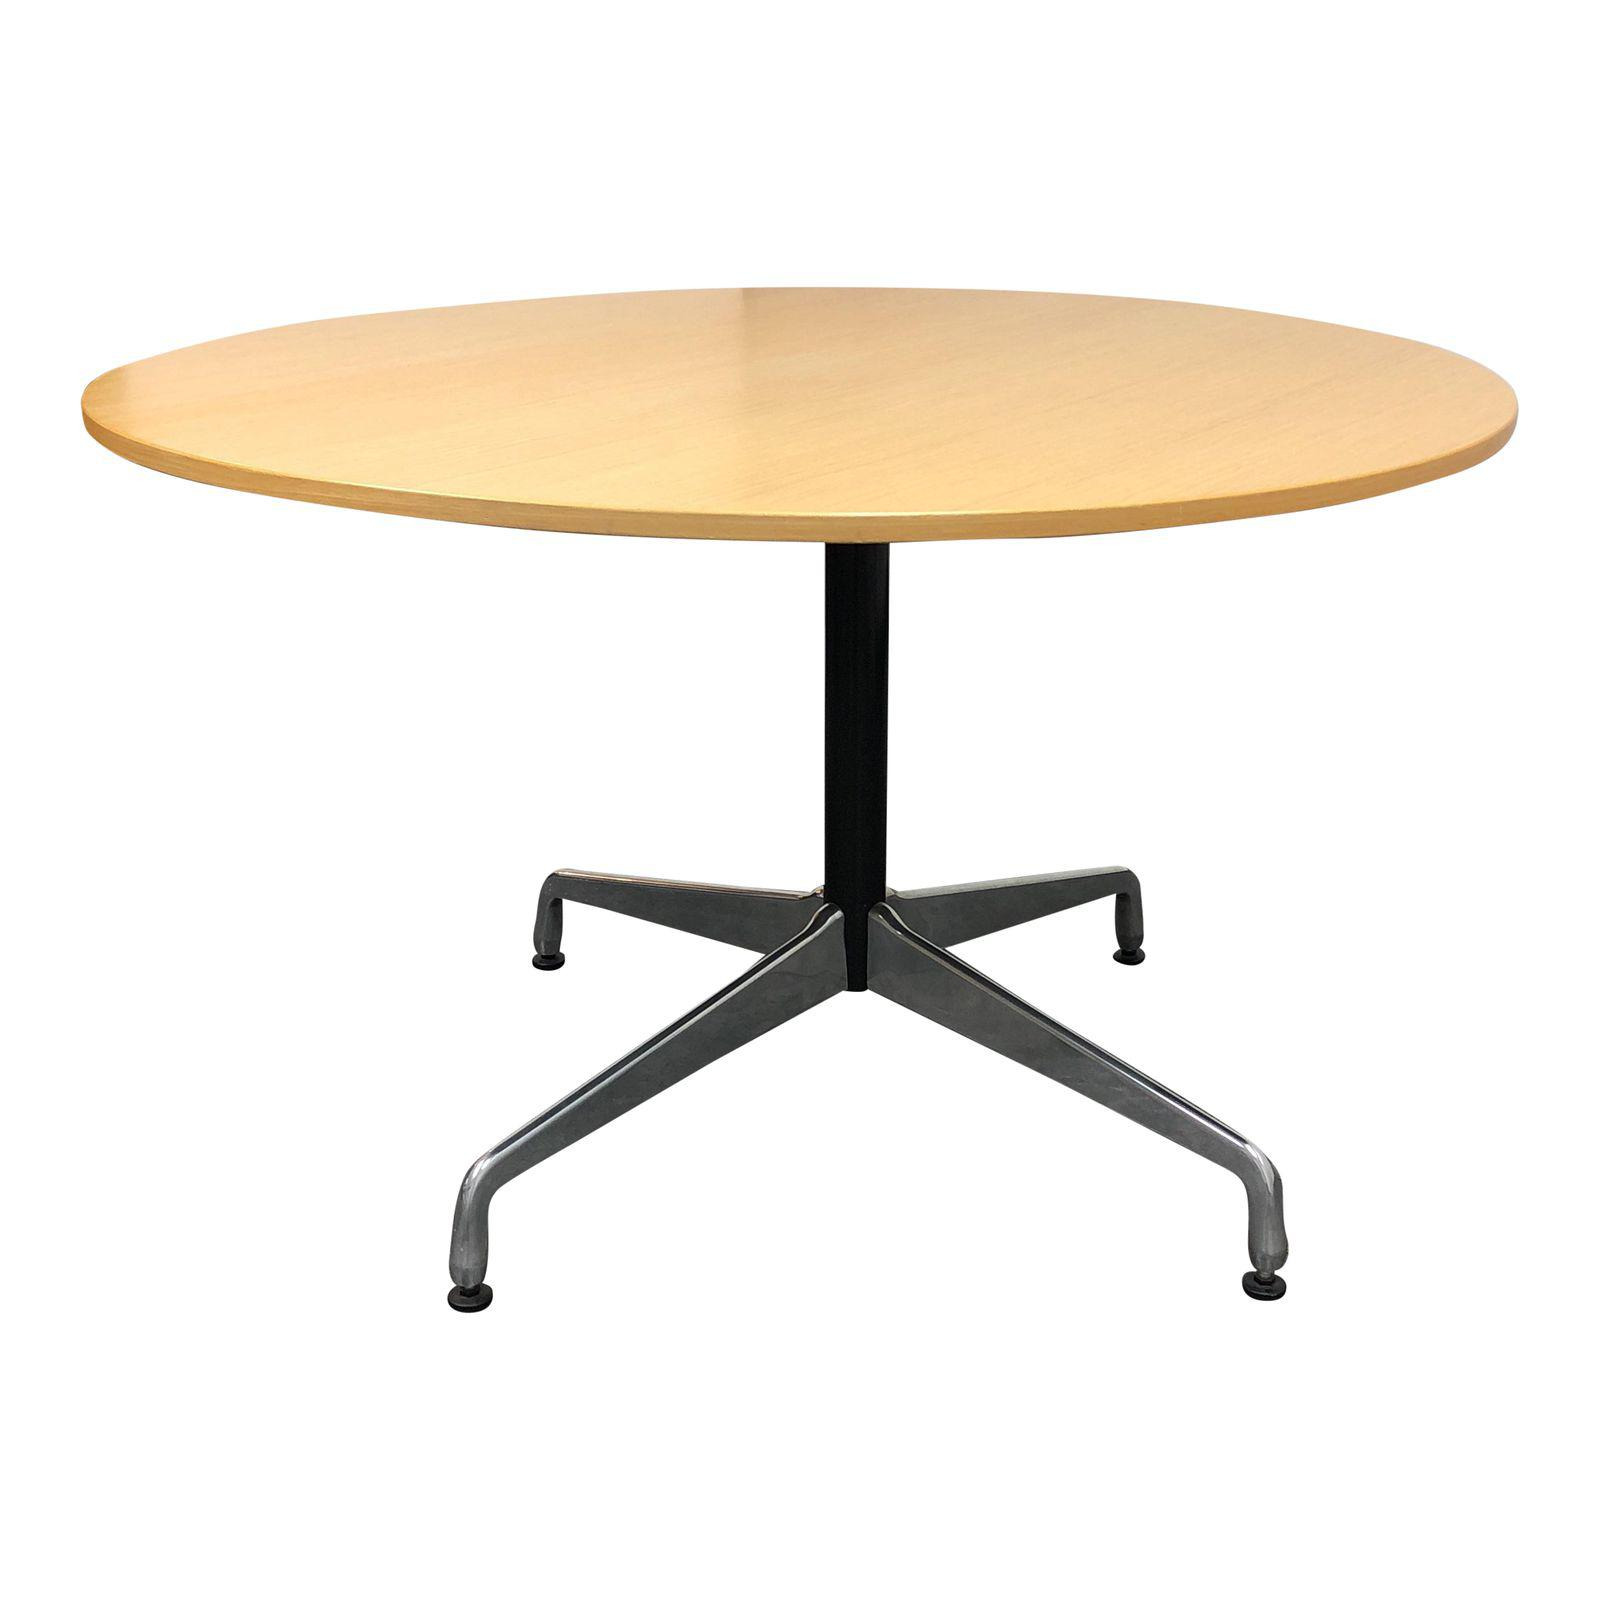 Herman Miller Eames 48 Round Dining Table Design Plus Gallery